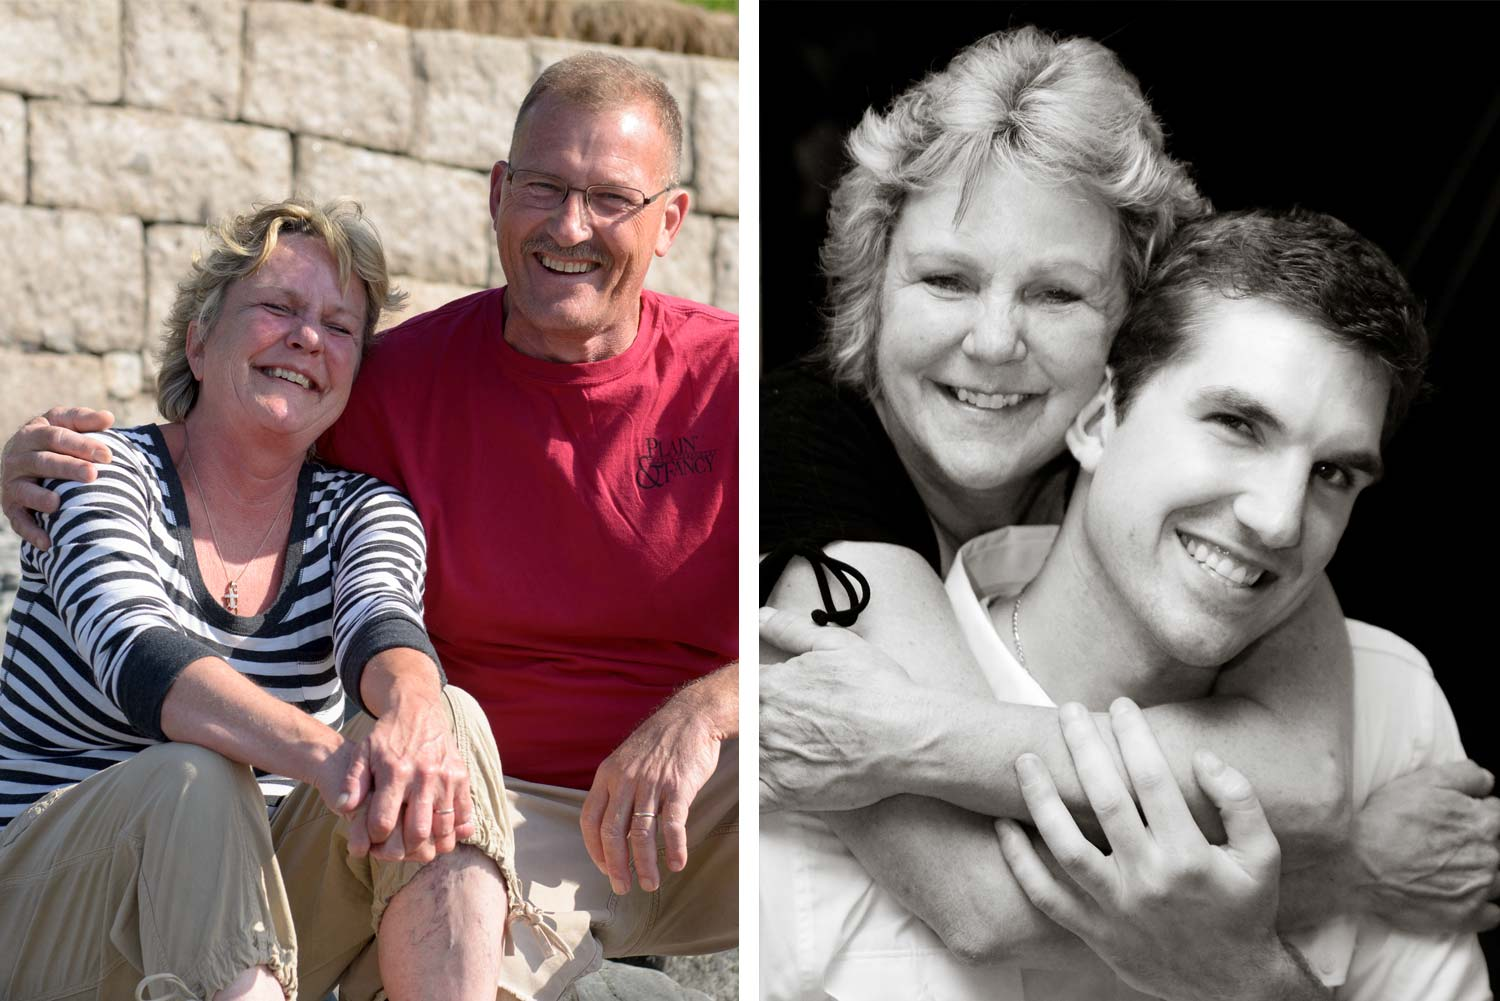 (Left) Mom and Dad in Bar Harbor sharing a laugh together (right) Mom and I at my wedding reception